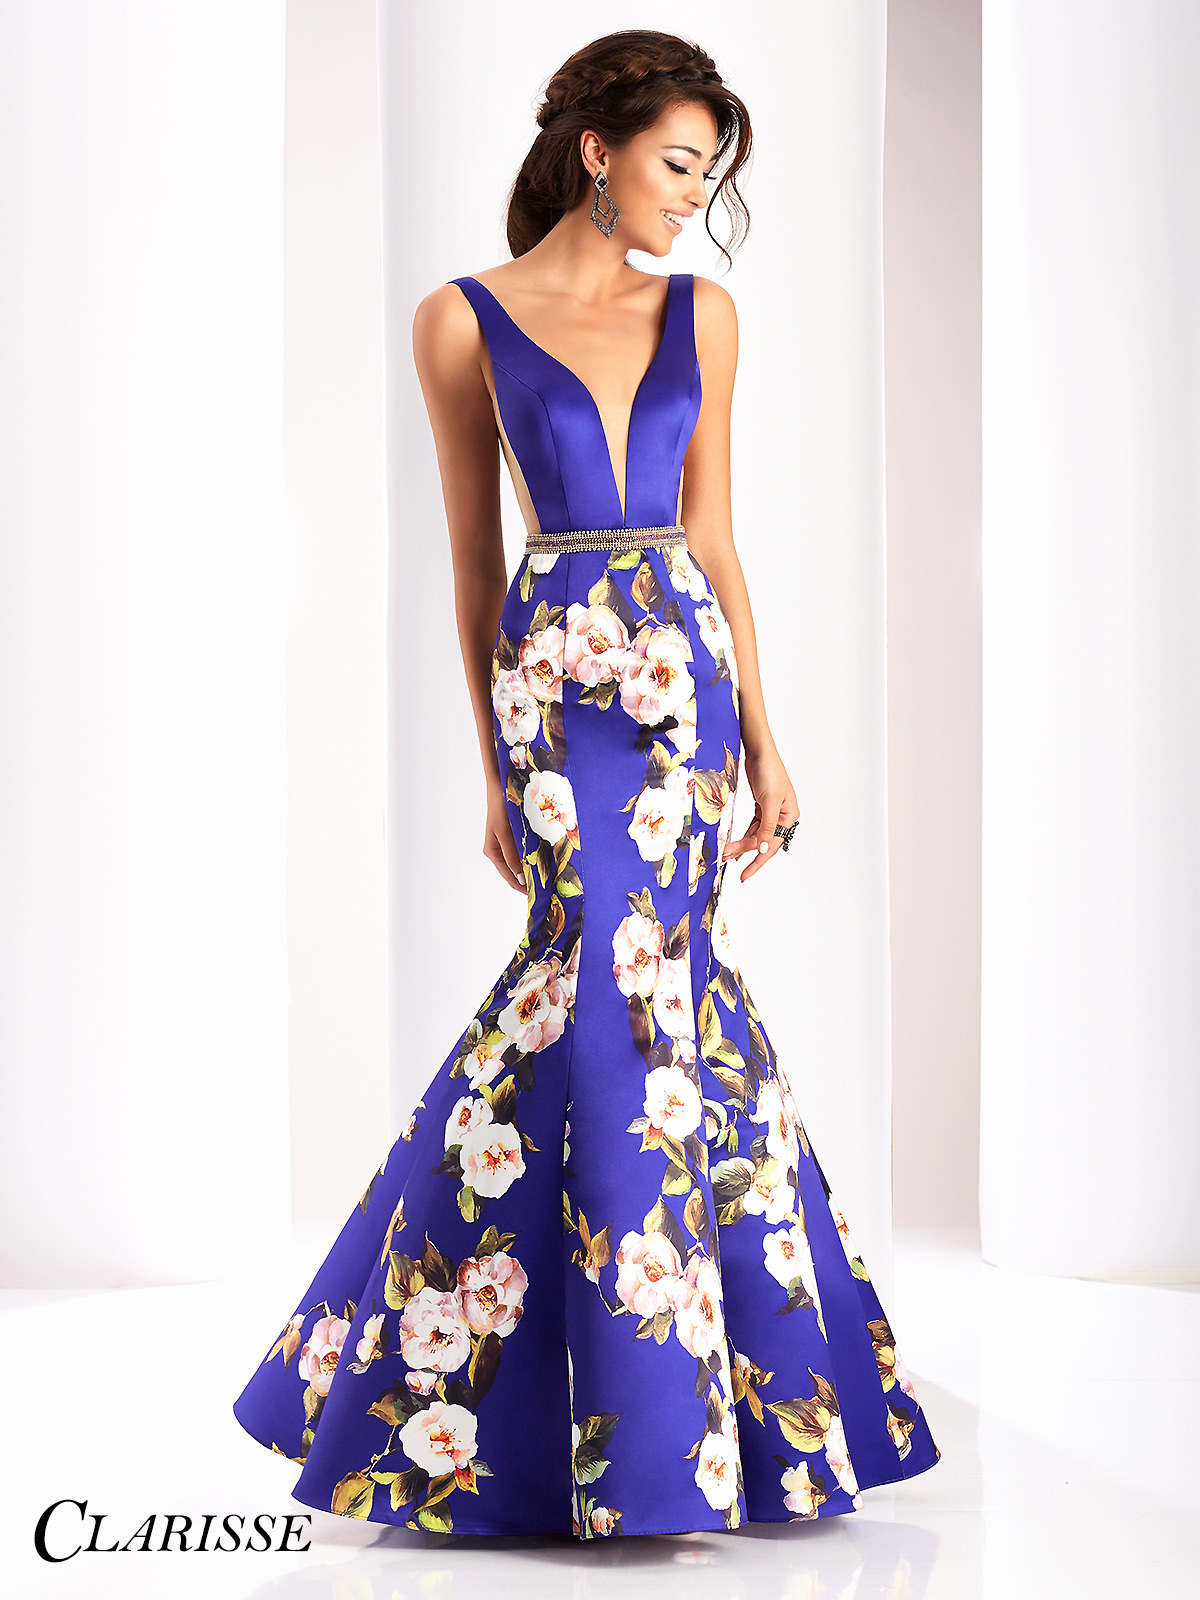 Clarisse prom dress 4813 promgirl clarisse purple floral mermaid prom dress 4813 mightylinksfo